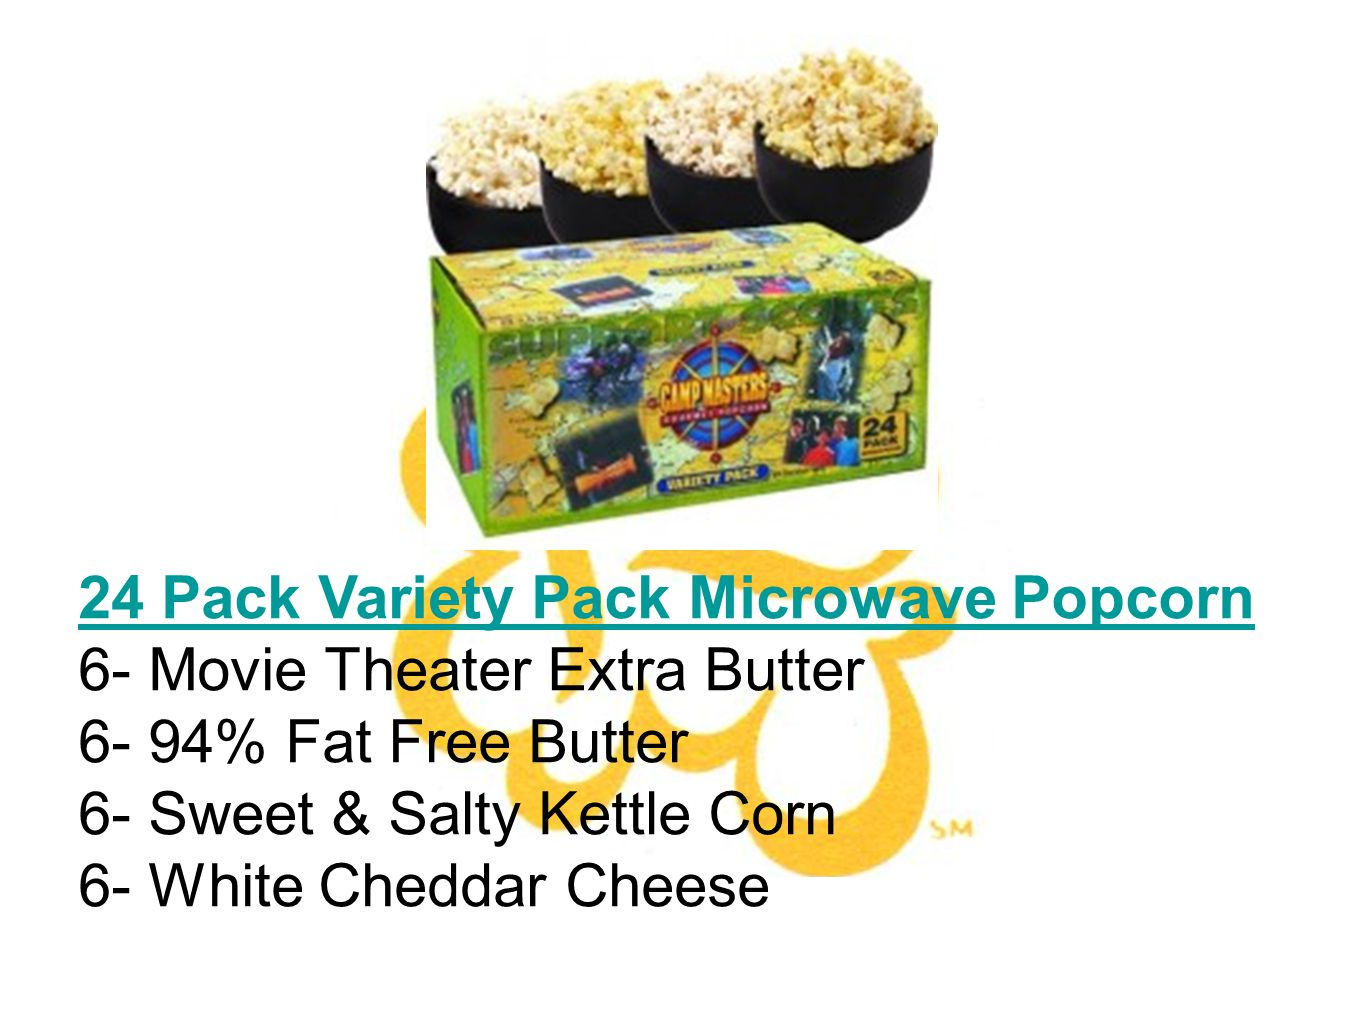 24 Pack Variety Pack Microwave Popcorn 6- Movie Theater Extra Butter 6- 94% Fat Free Butter 6- Sweet & Salty Kettle Corn 6- White Cheddar Cheese